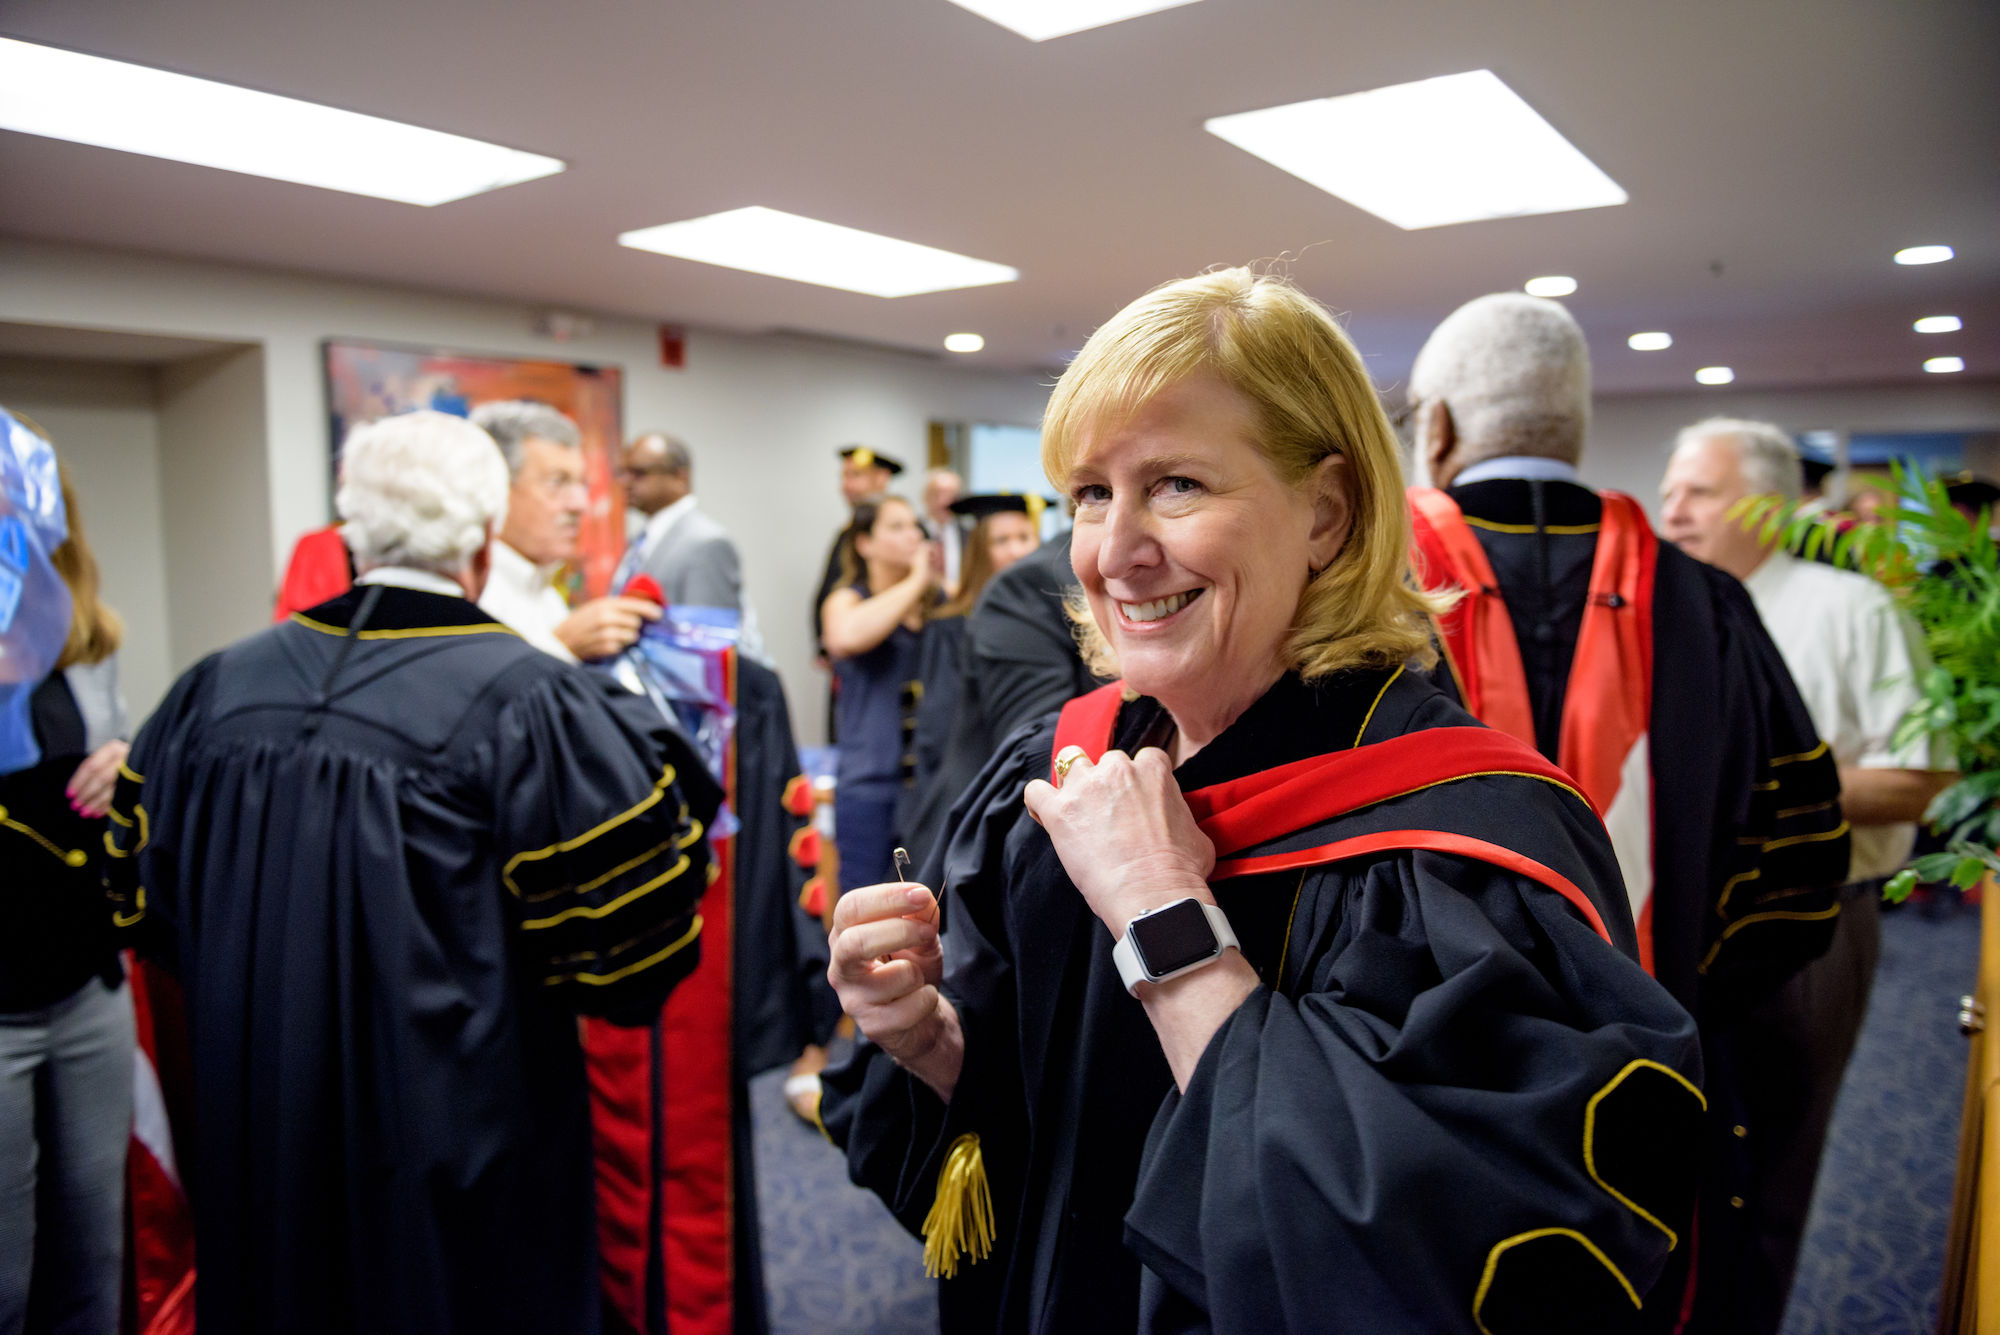 RHIT_Commencement_Platform_Party_Robing-21564.jpg